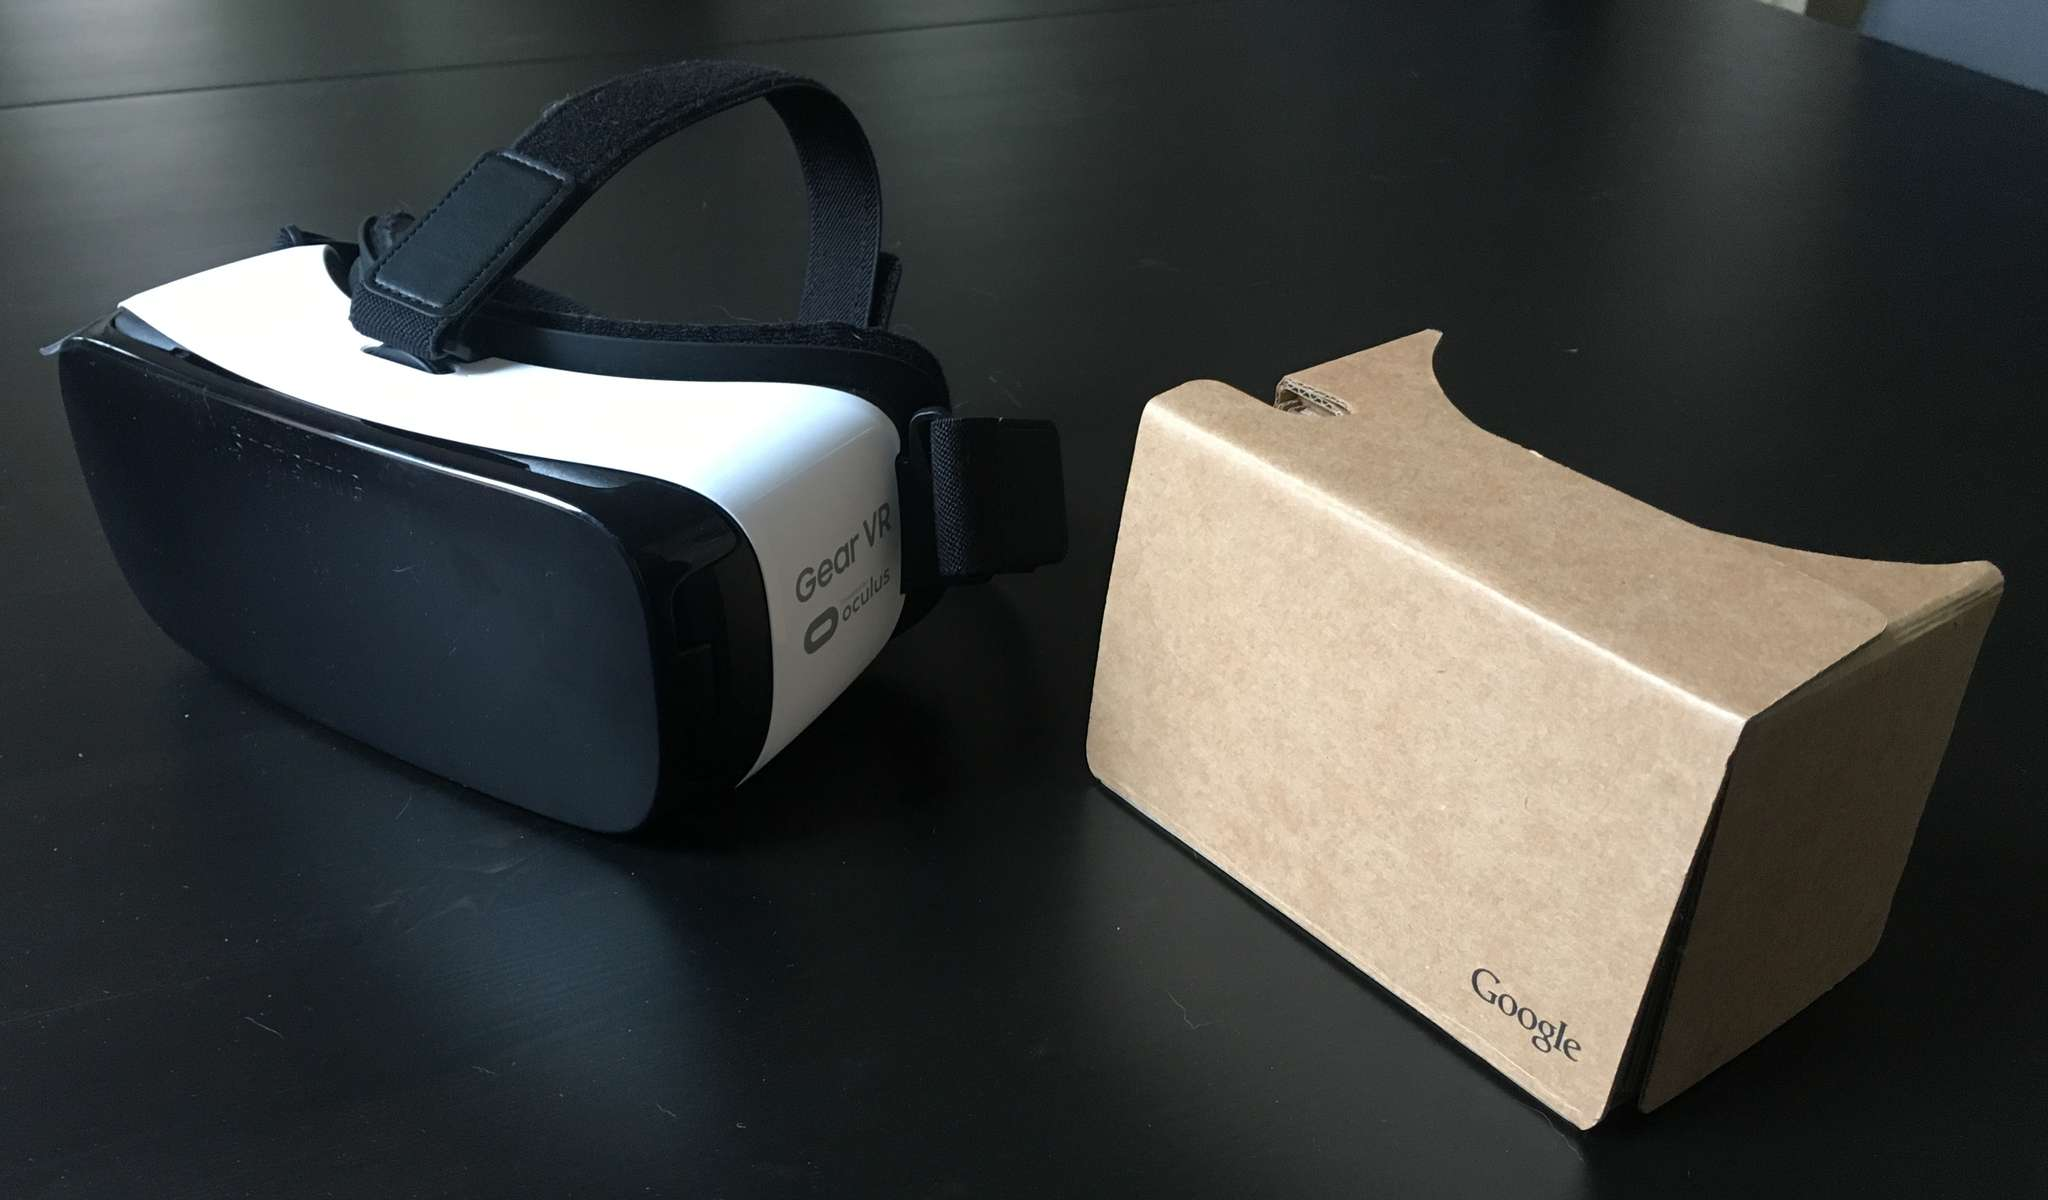 Samsung Gear VR (above left) and Google Cardboard offer inexpensive introductions to the wonderful world of VR (virtual reality).